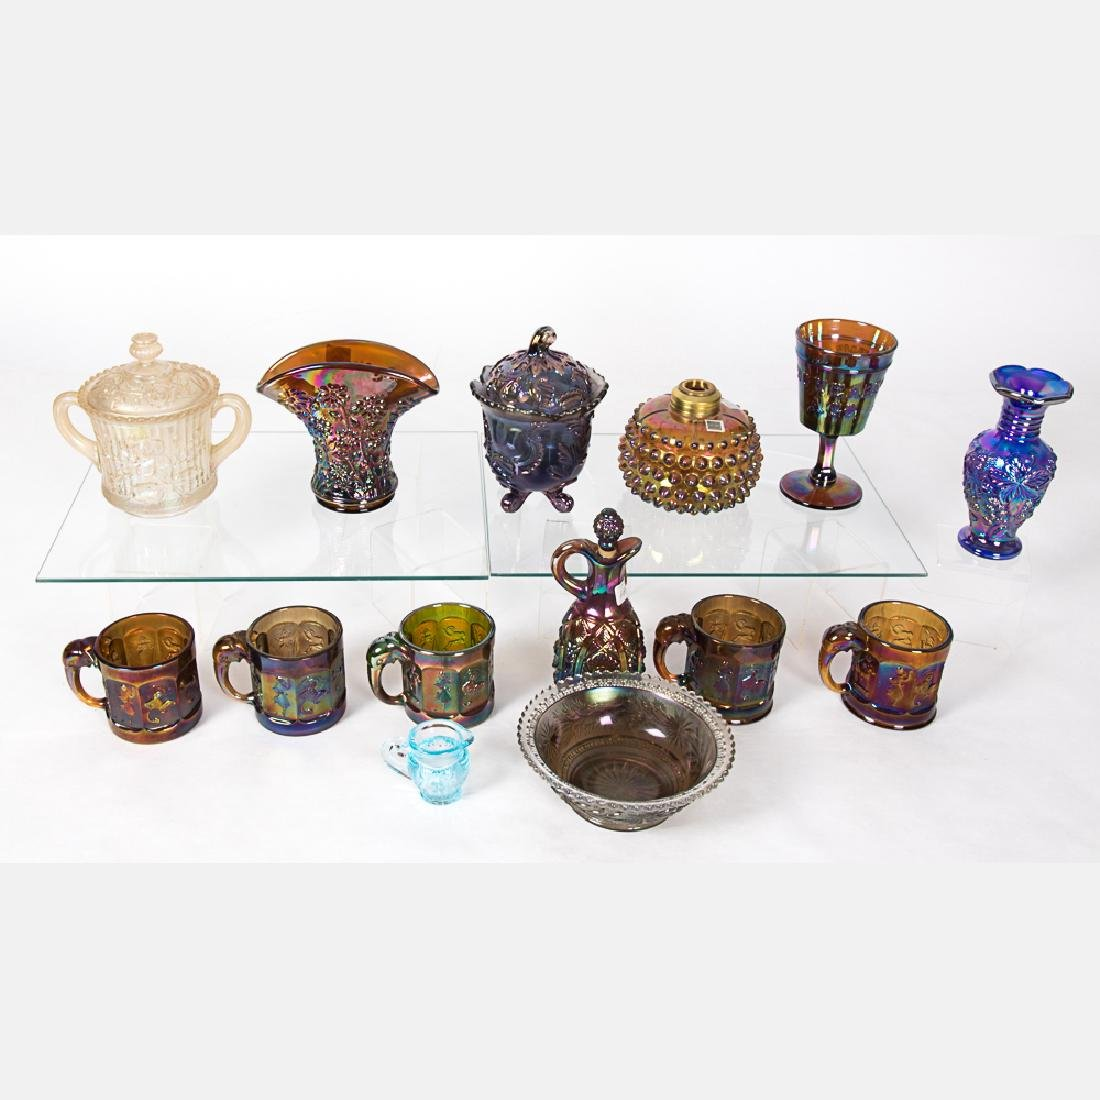 A Collection of Carnival Glass Serving and Decorative